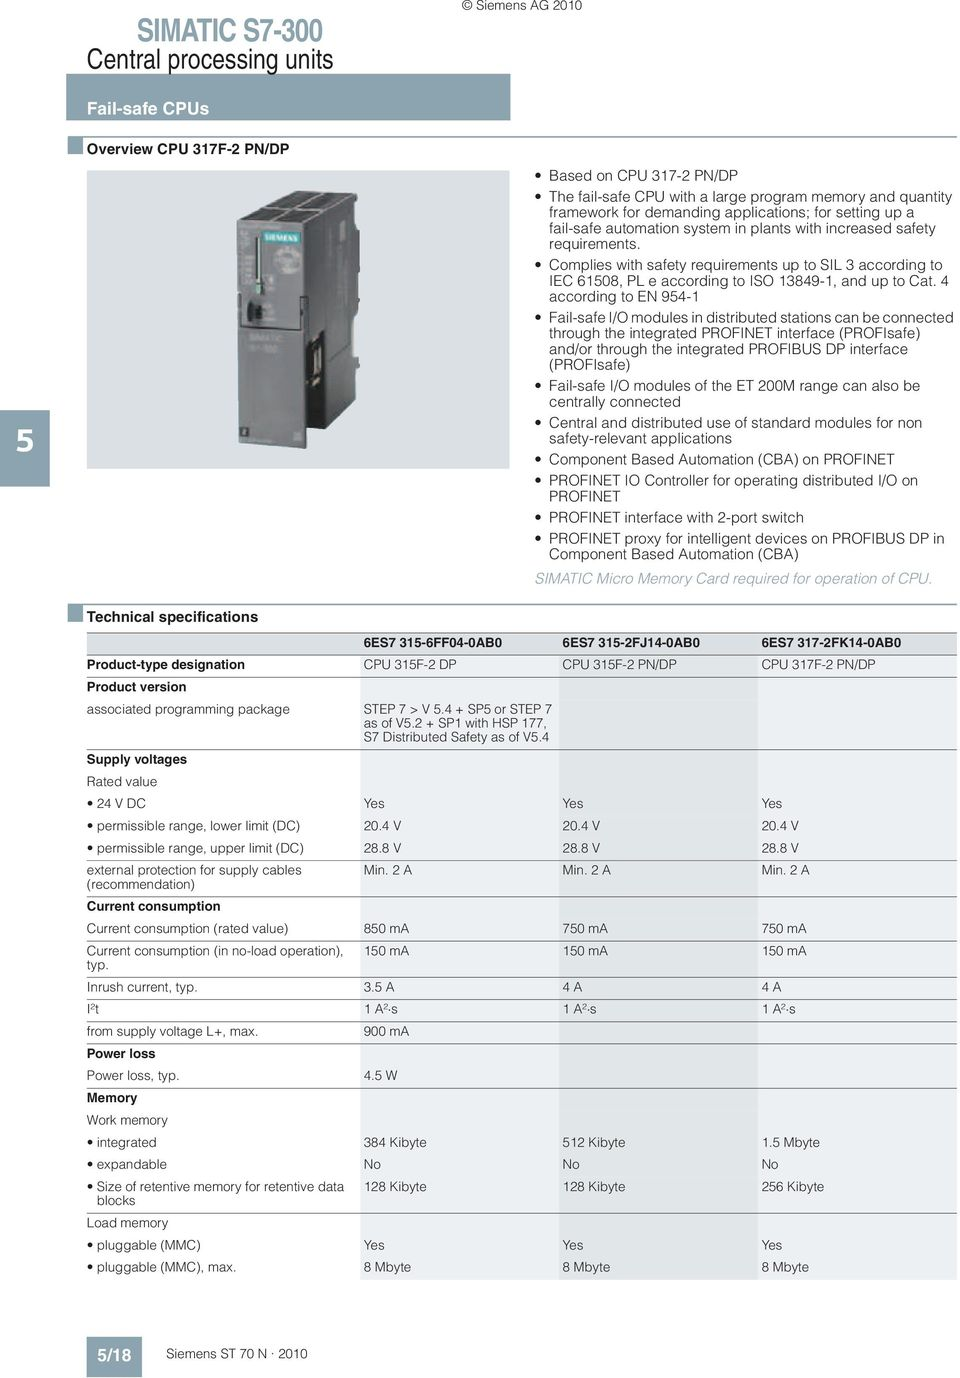 Complies with safety requirements up to SIL 3 according to IEC 6108, PL e according to ISO 13849-1, and up to Cat.